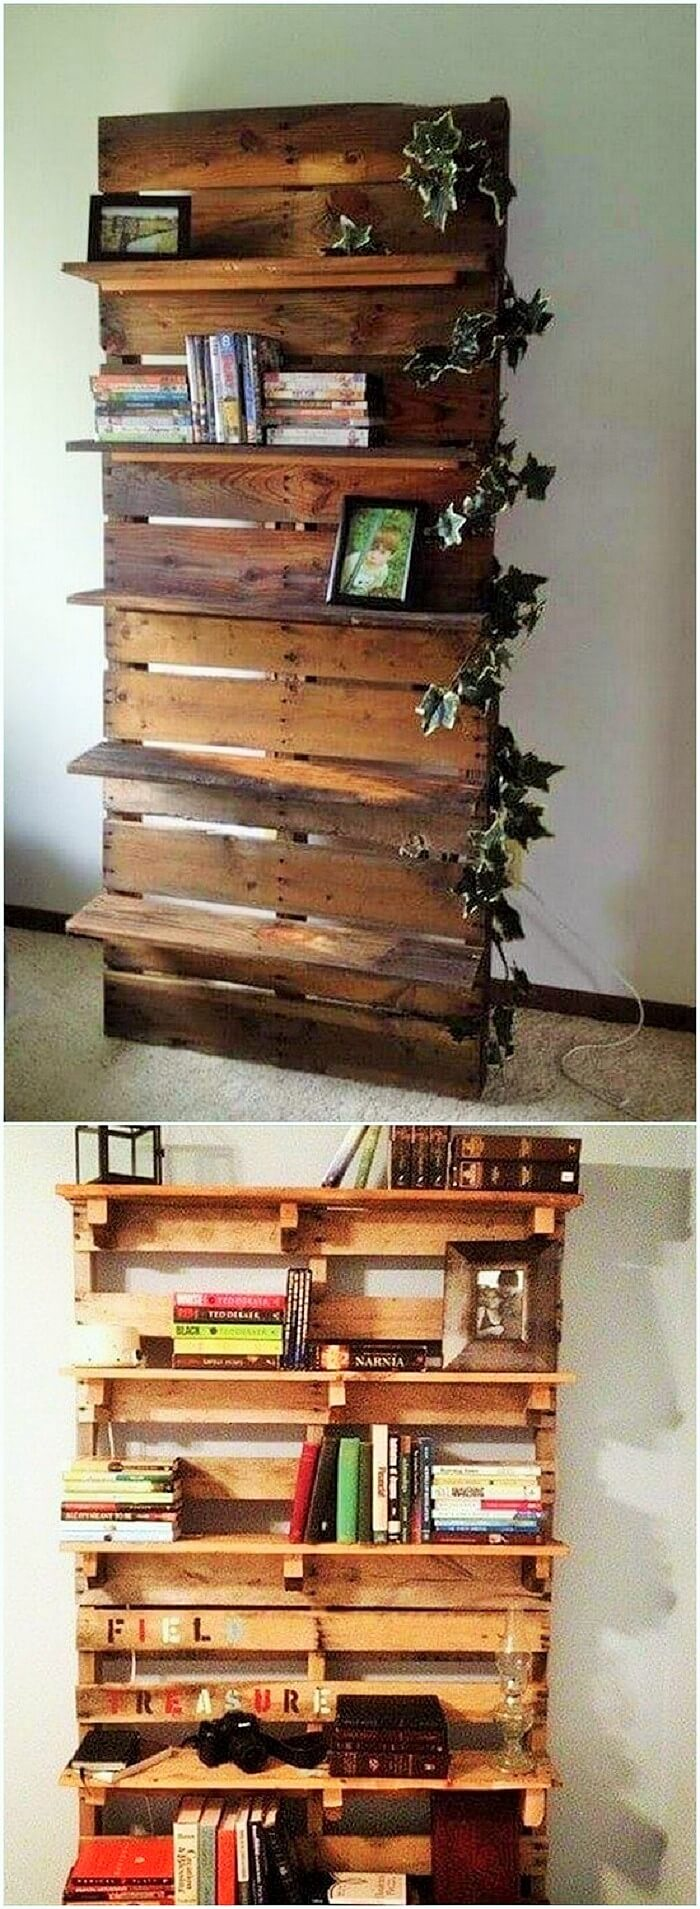 DIY Wooden Pallets Ideas-1